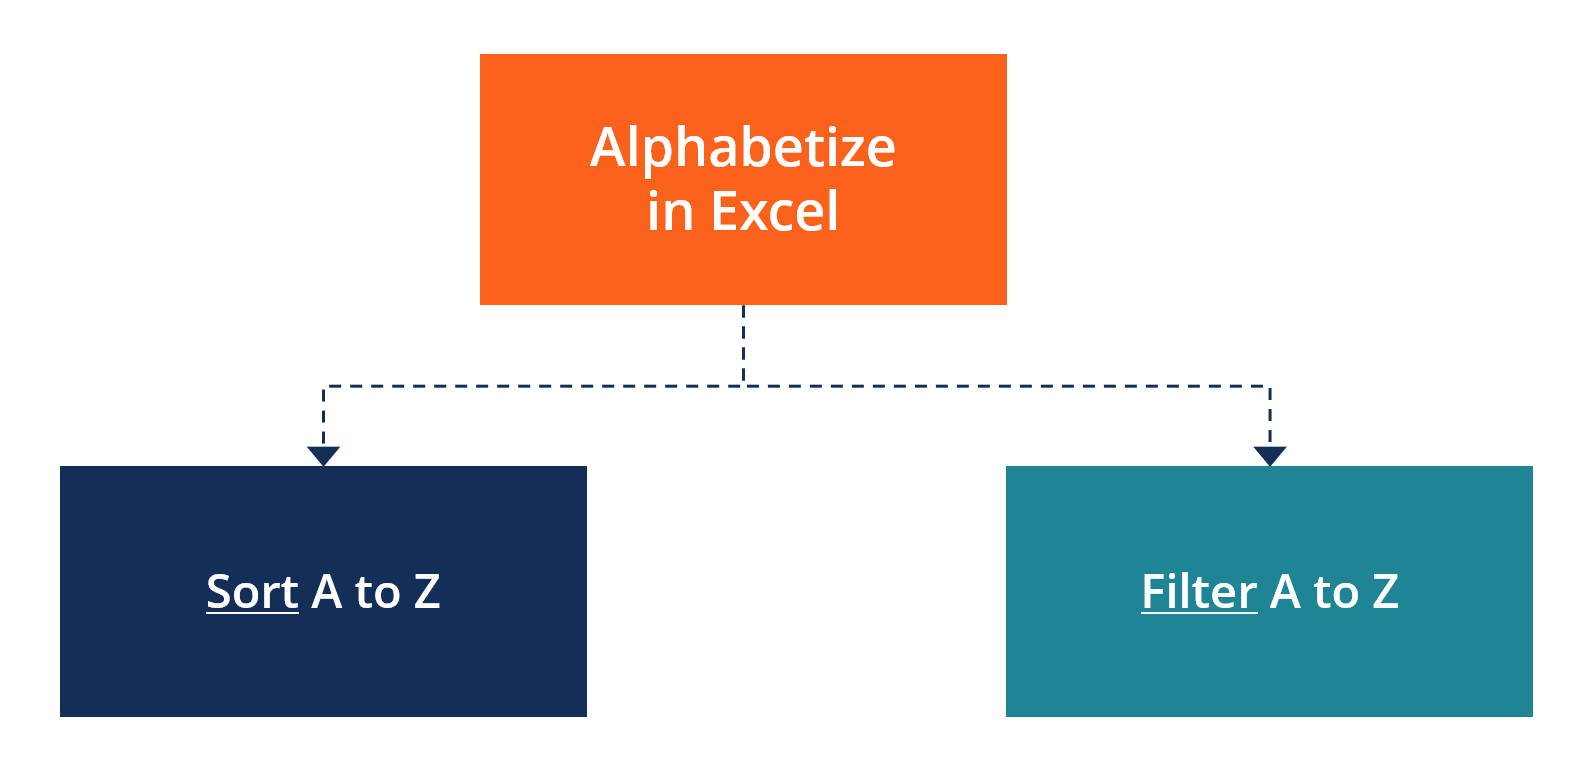 Alphabetize in Excel - Diagram